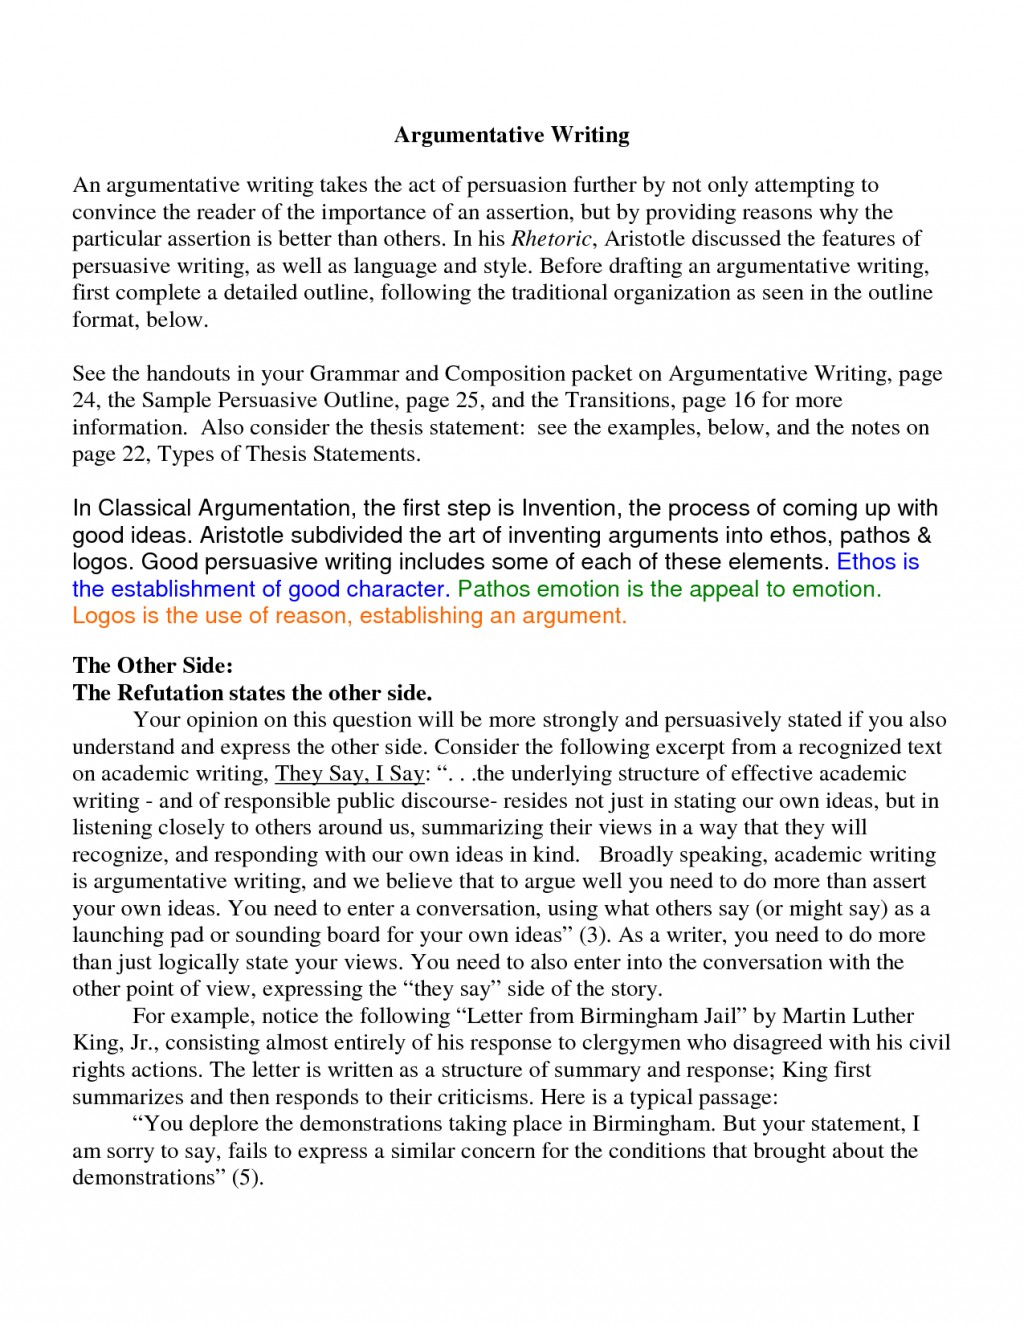 013 Marvelous Essay Persuasiventatives Picture Ideas Template Help Writing Popular Online 1024x1325 Frightening Discount Code Essays Uk English Large